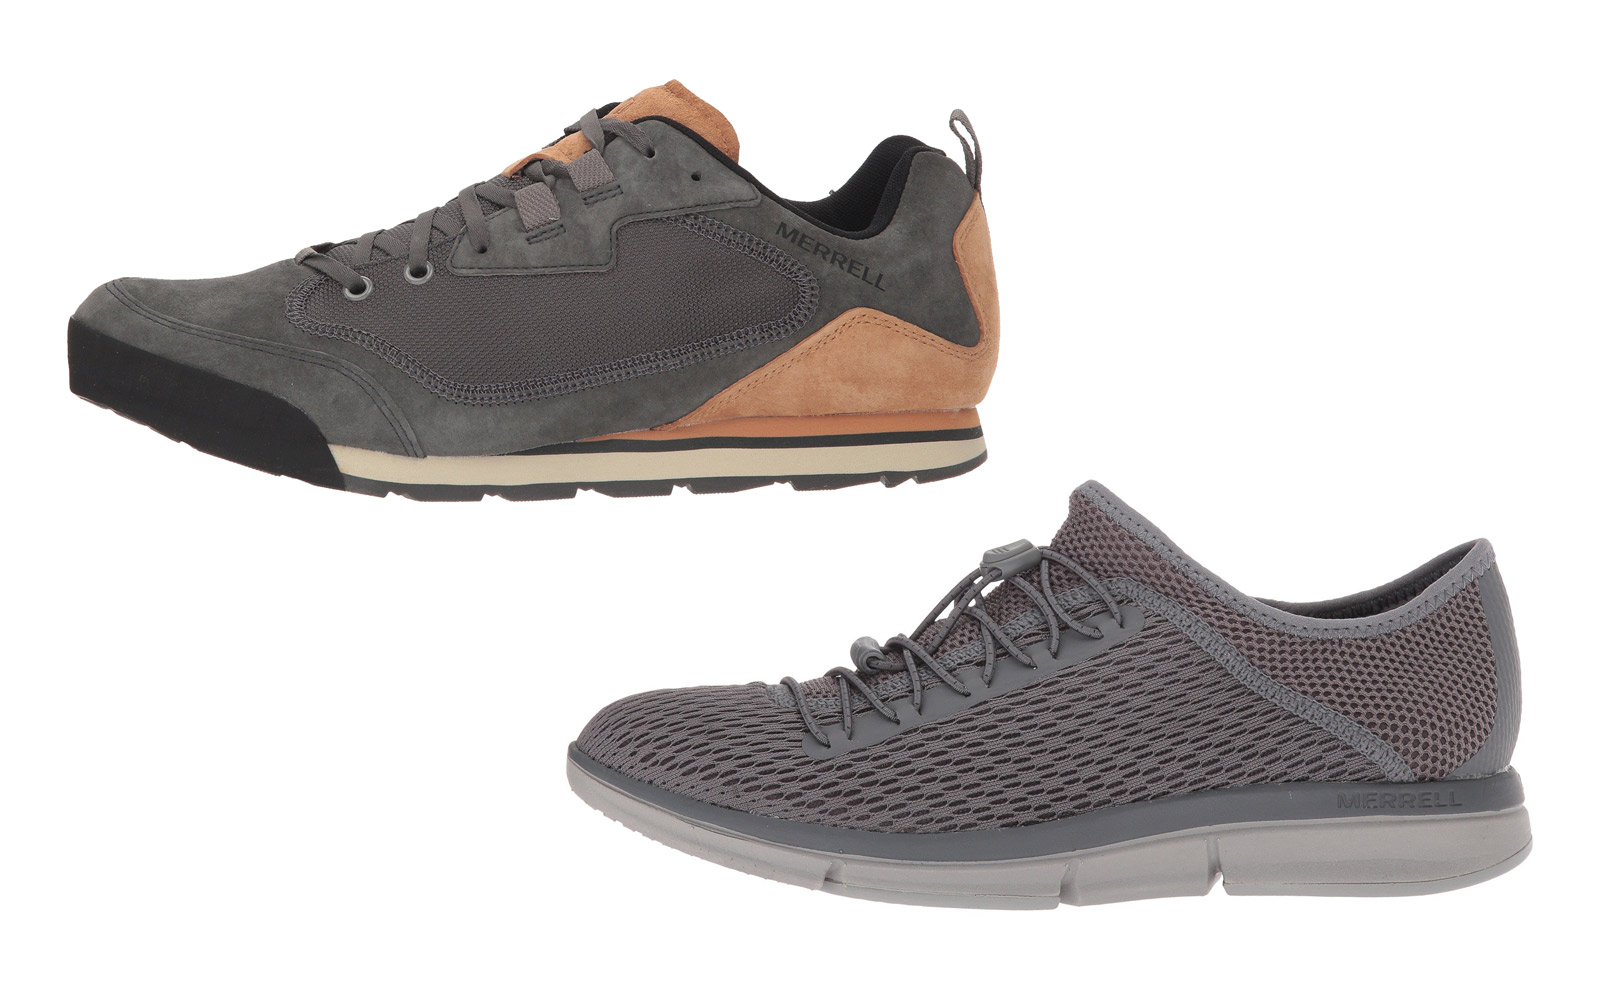 badfcce39e8 The Best Comfort Shoes Brands